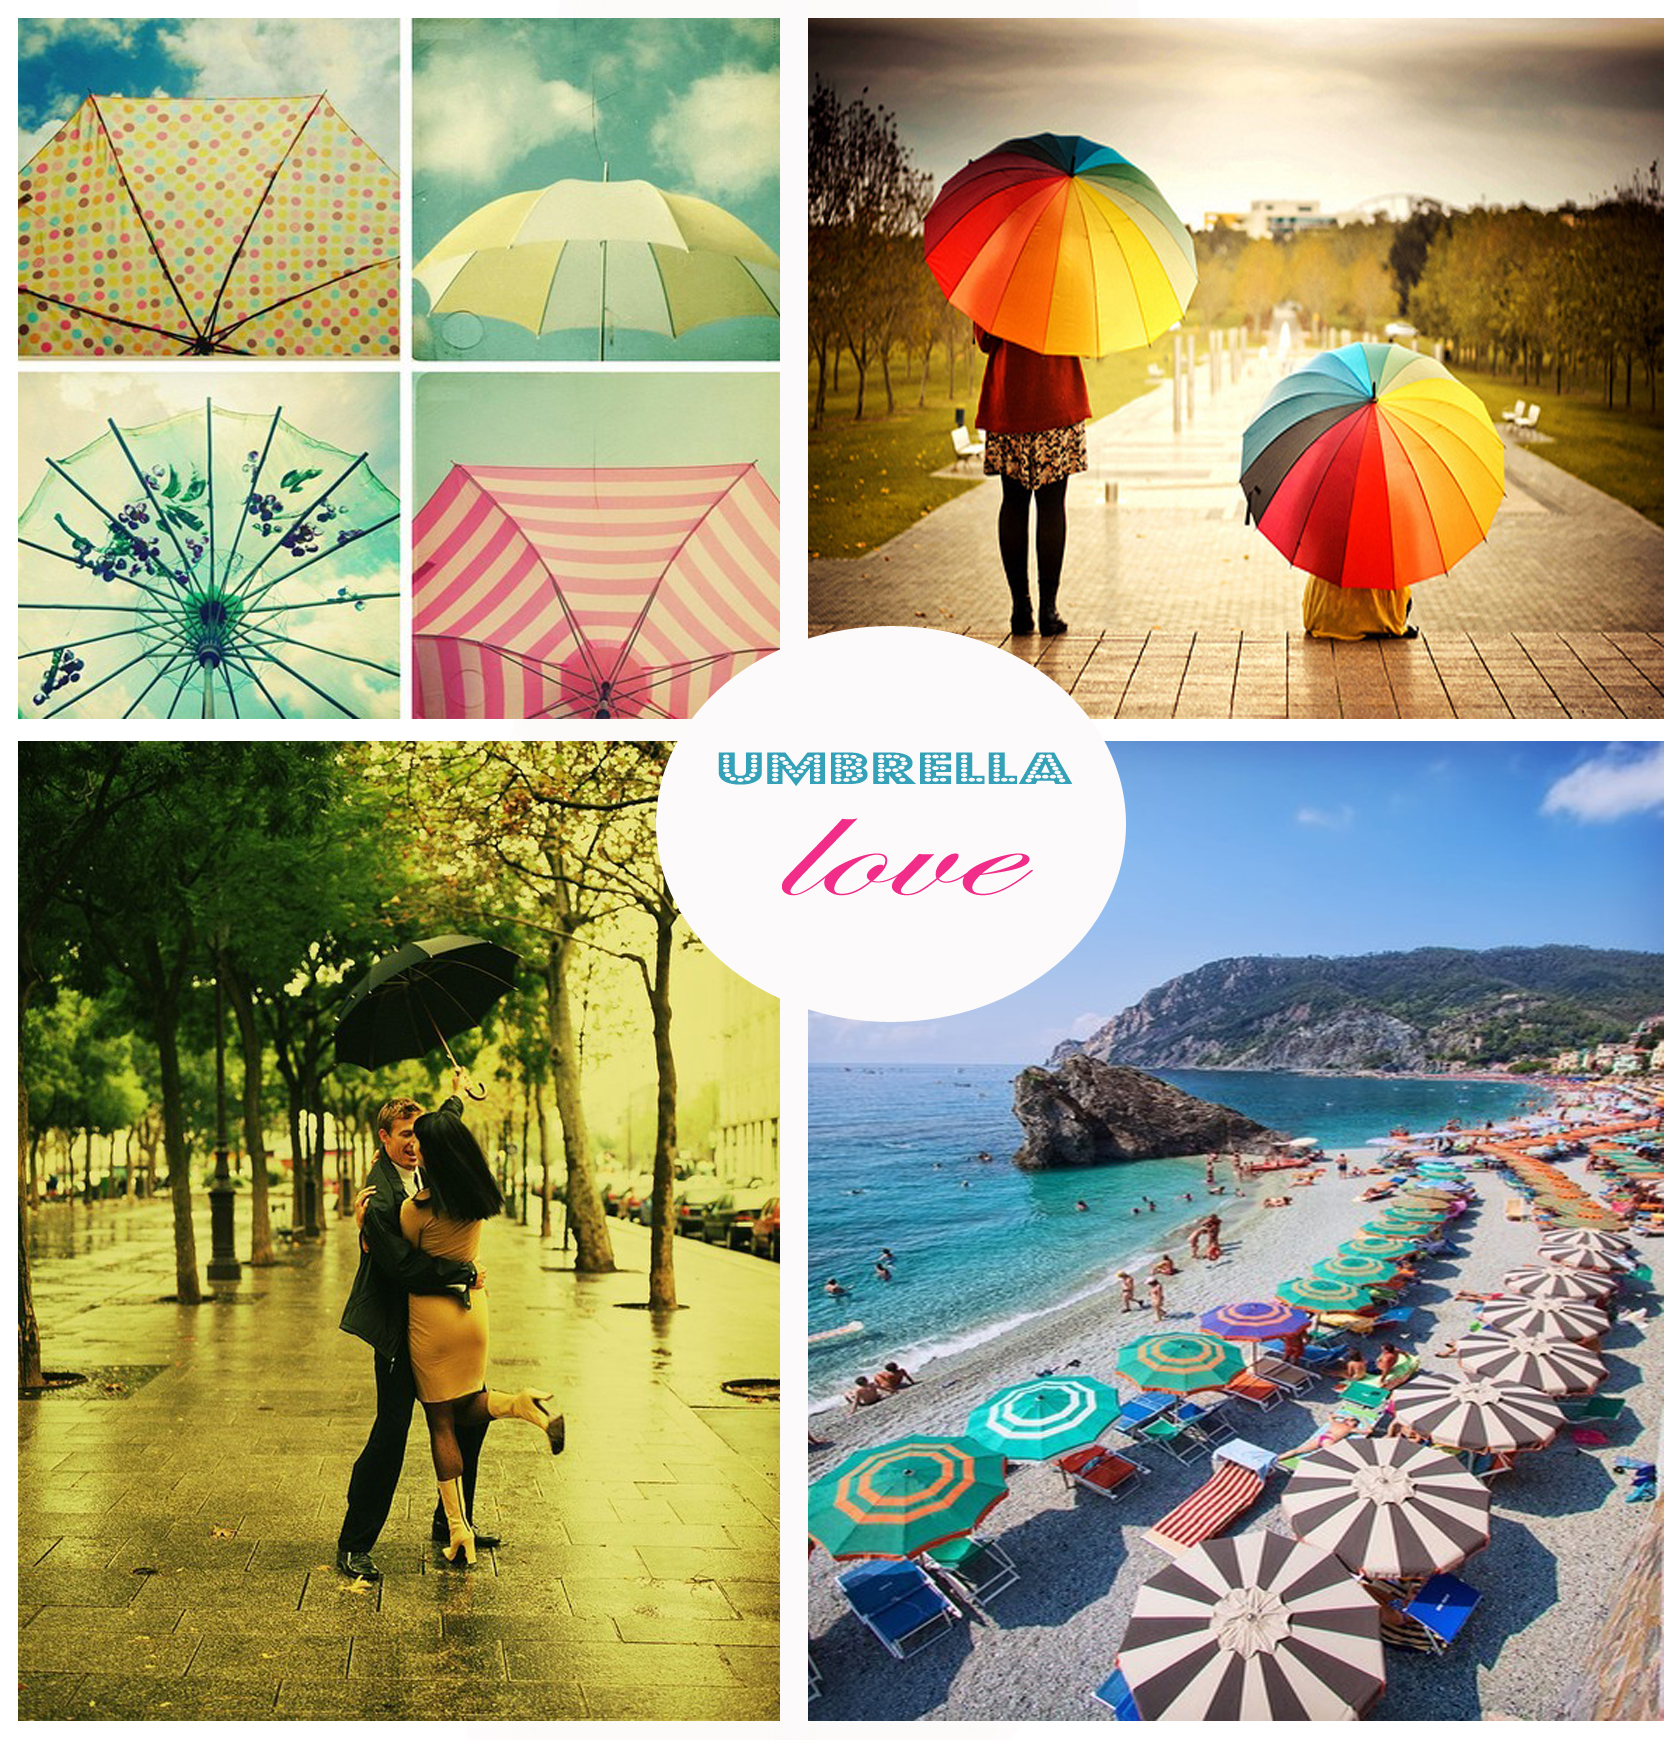 Do you pack an umbrella on your vacation?